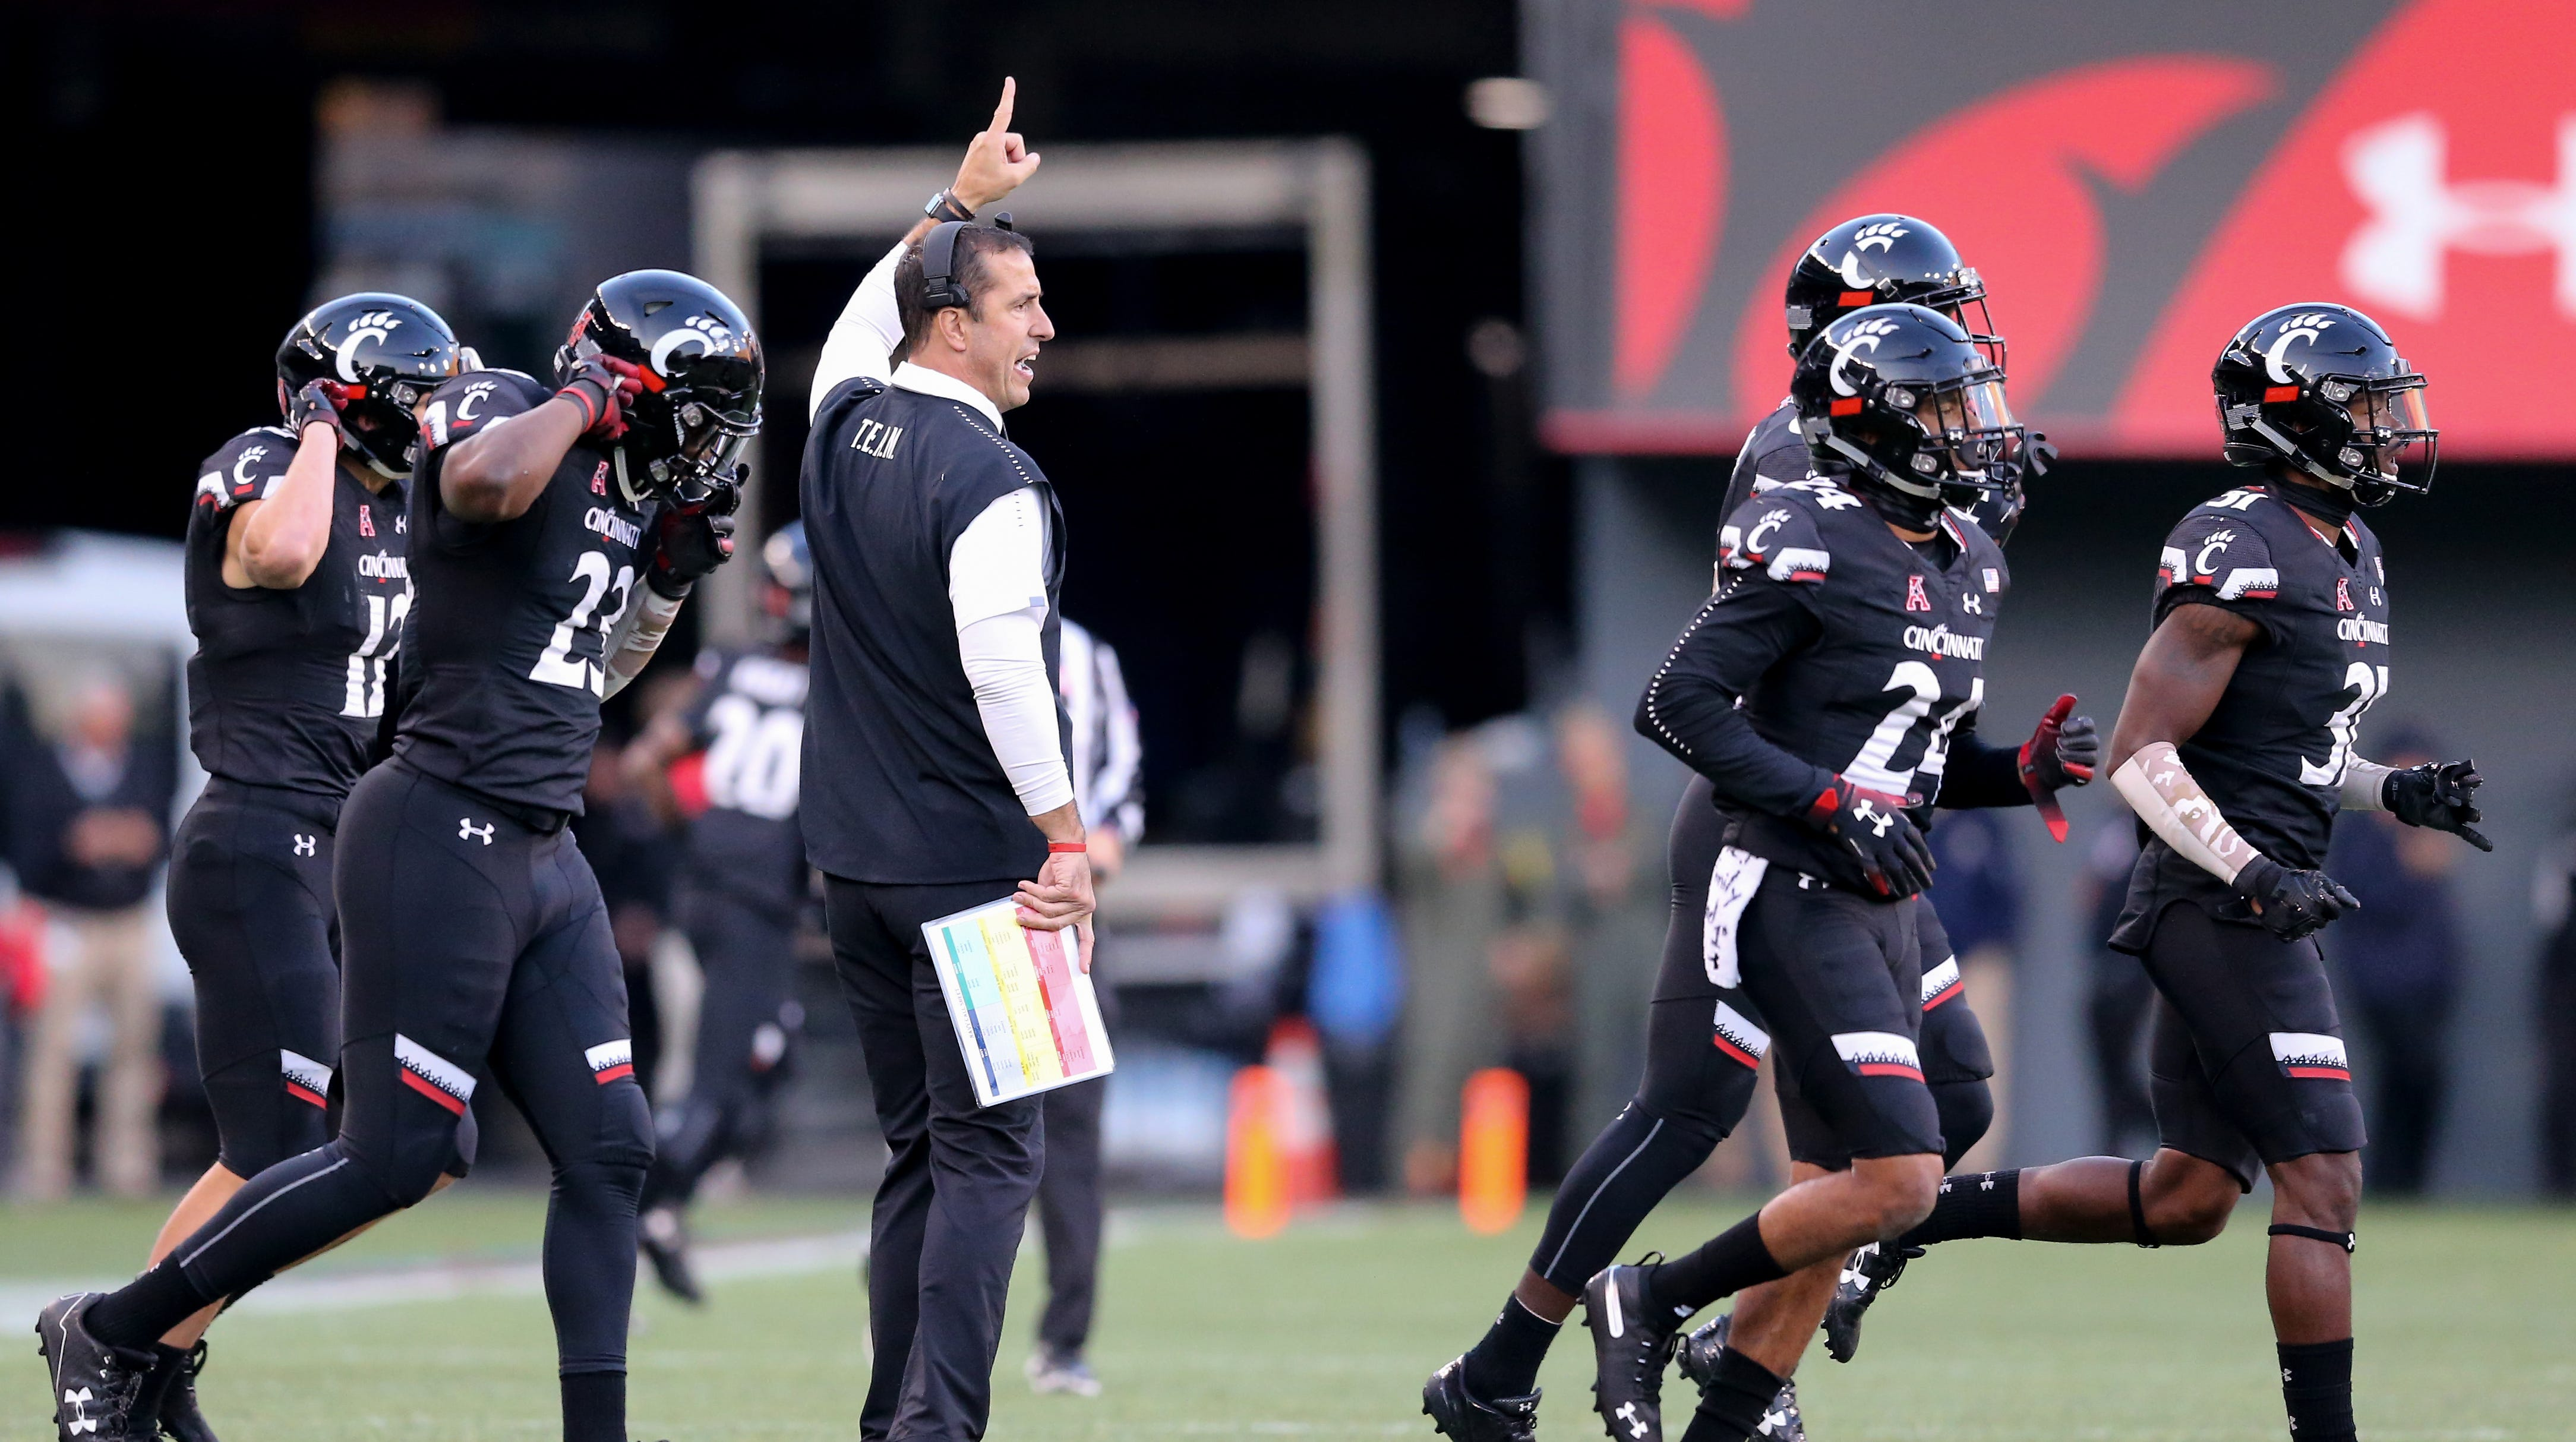 Fickell S Bearcats To Face Virginia Tech In Annapolis